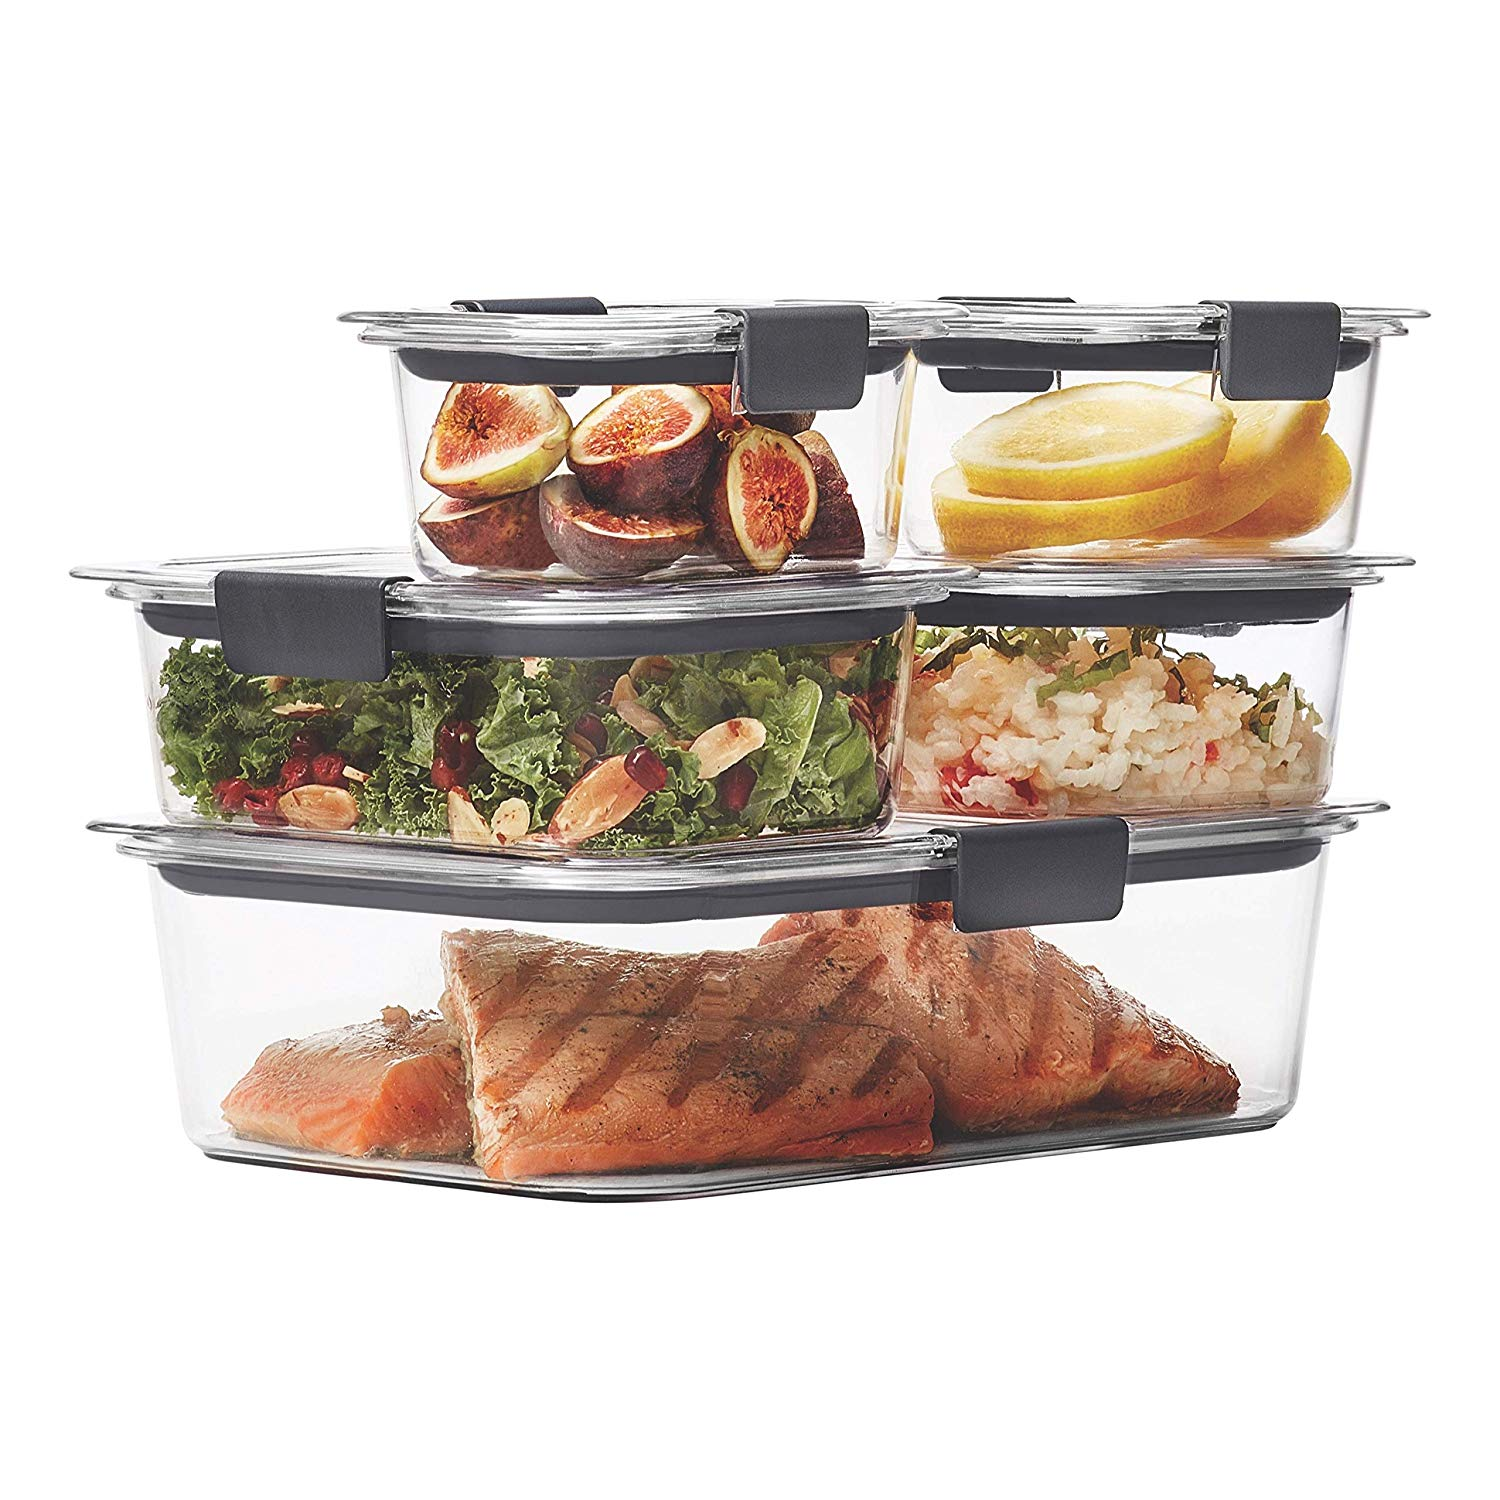 Rubbermaid Leak-Proof Food Storage Containers